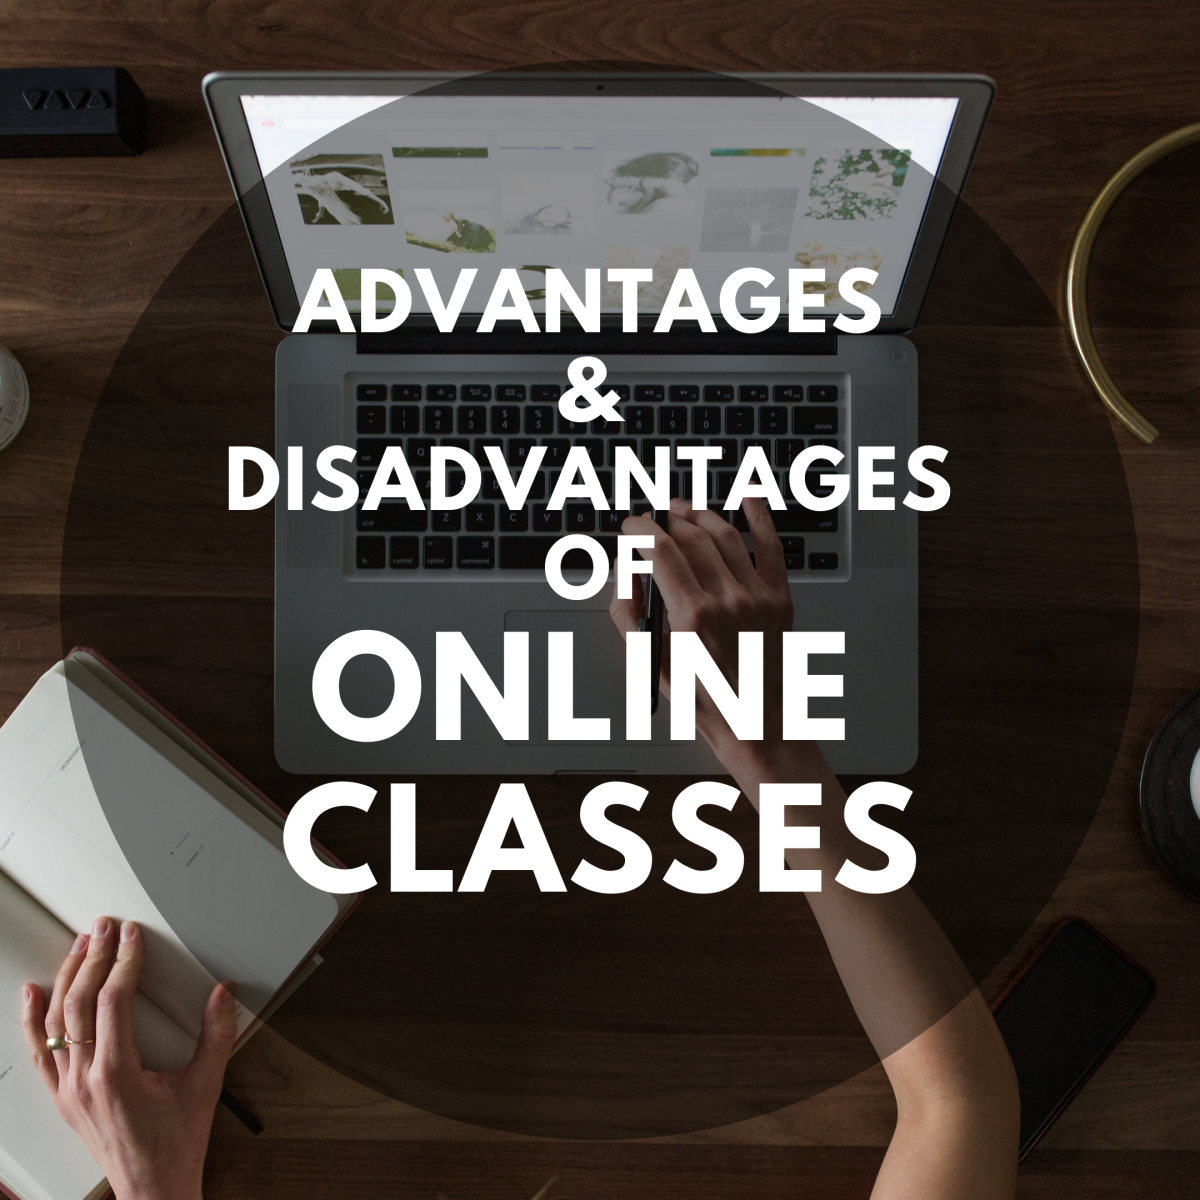 The Advantages and Disadvantages of Online Classes